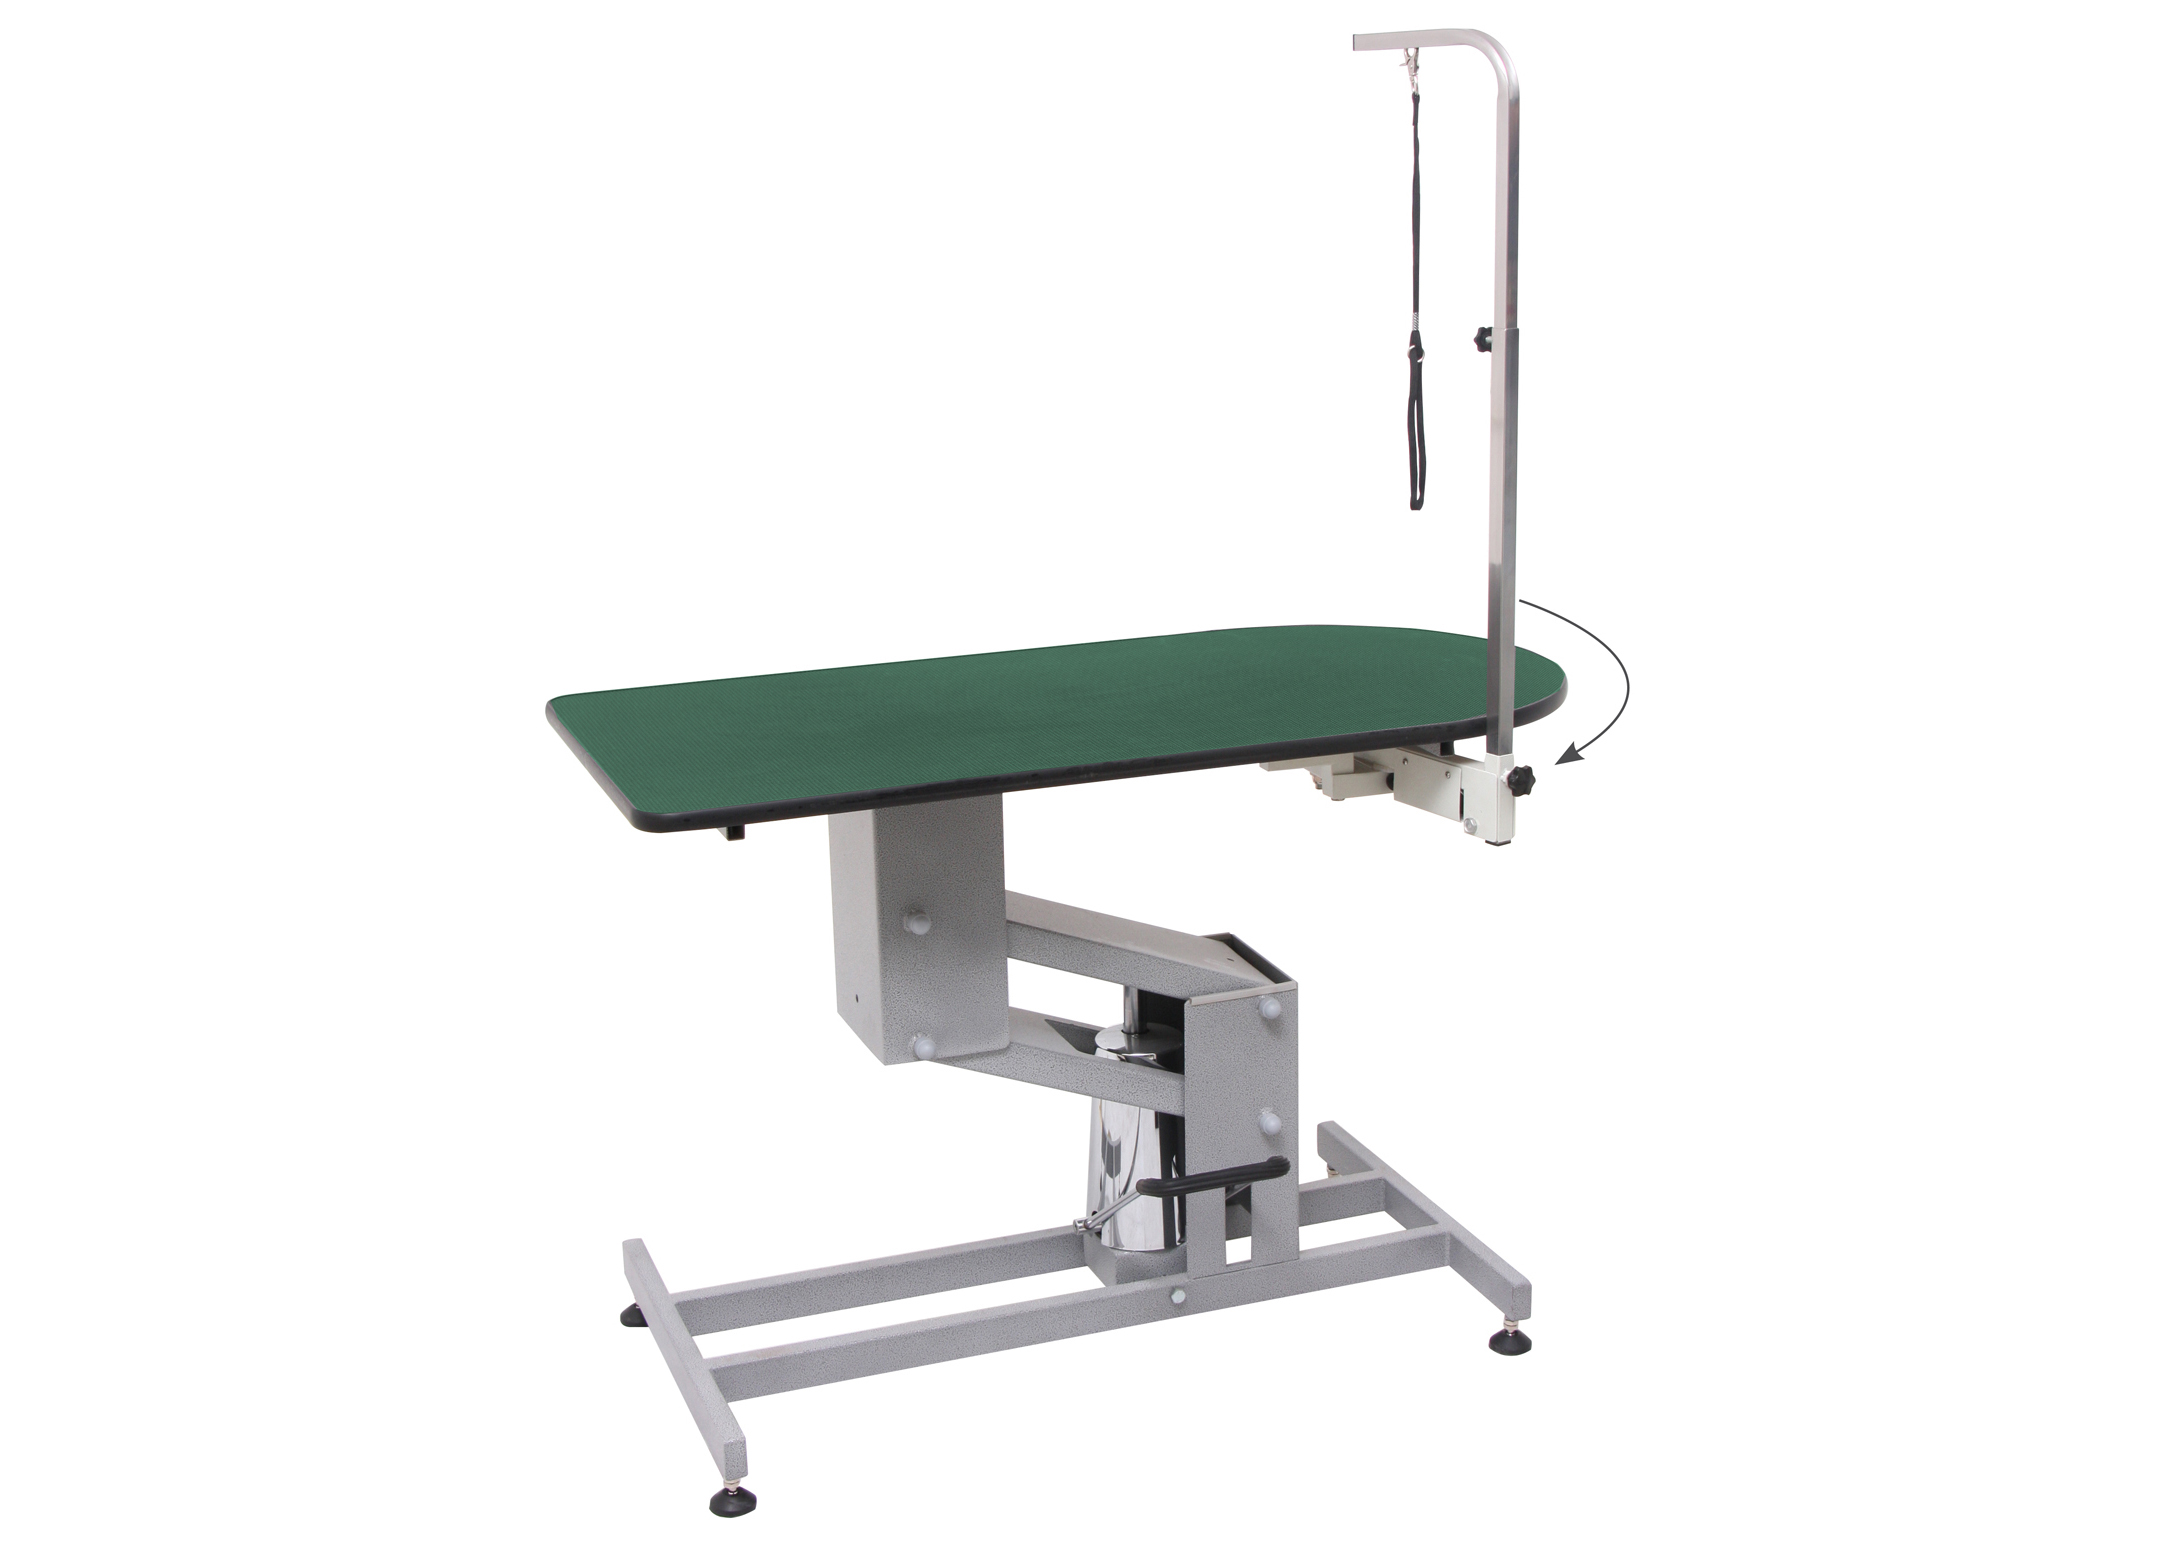 Groom-X Extra-Large Hydraulic Grooming Table 120x60x48-102cmh with Swing Control Post